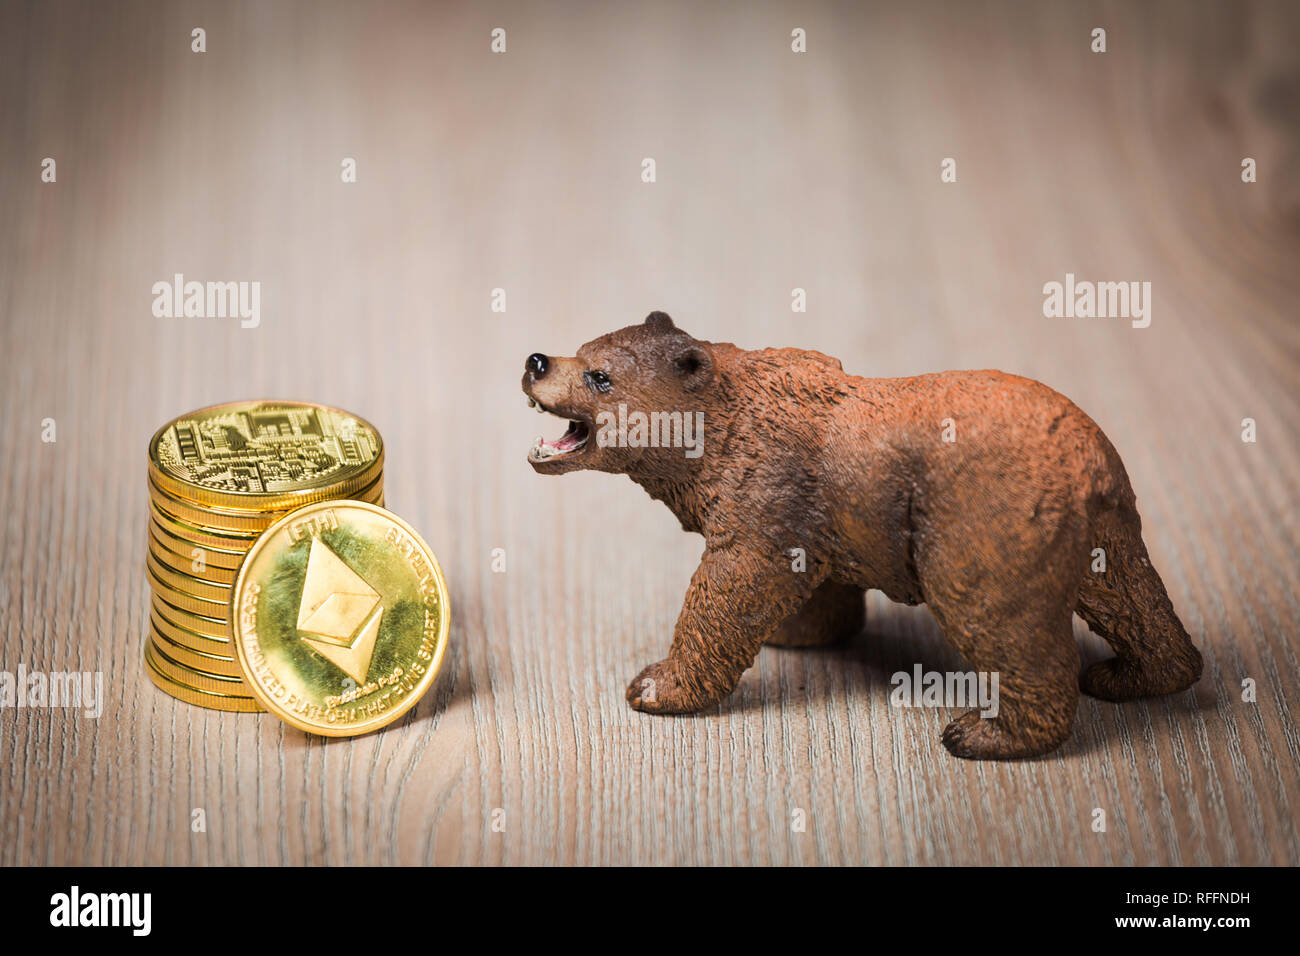 Cryptocurrency ethereum bear figure on a wooden table. Bearish market trend concept Stock Photo